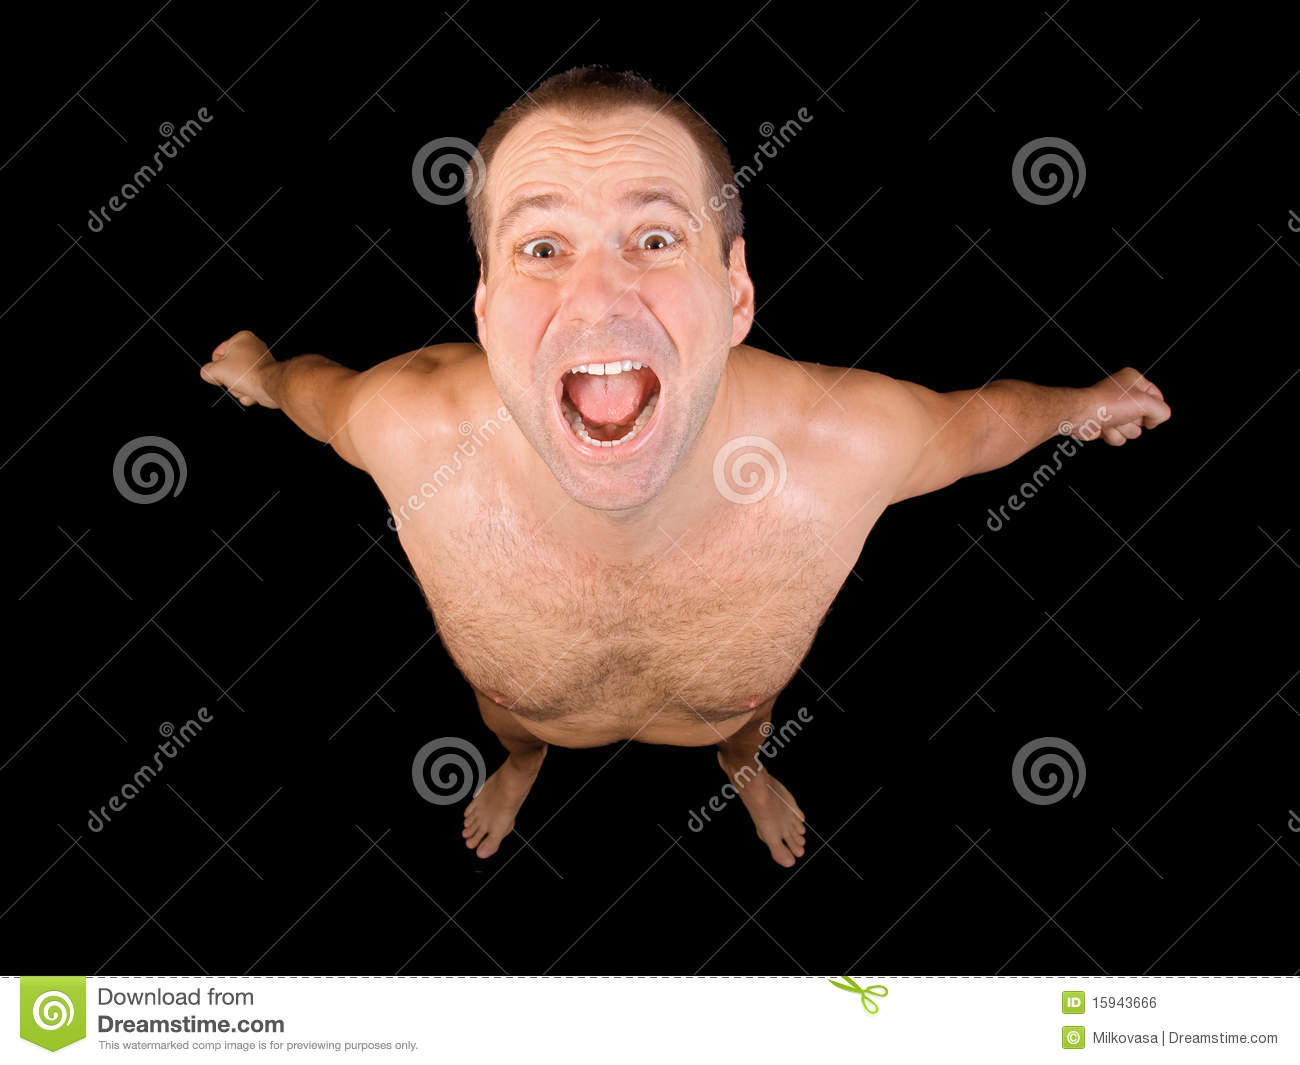 Naked Man Royalty Free Stock Image